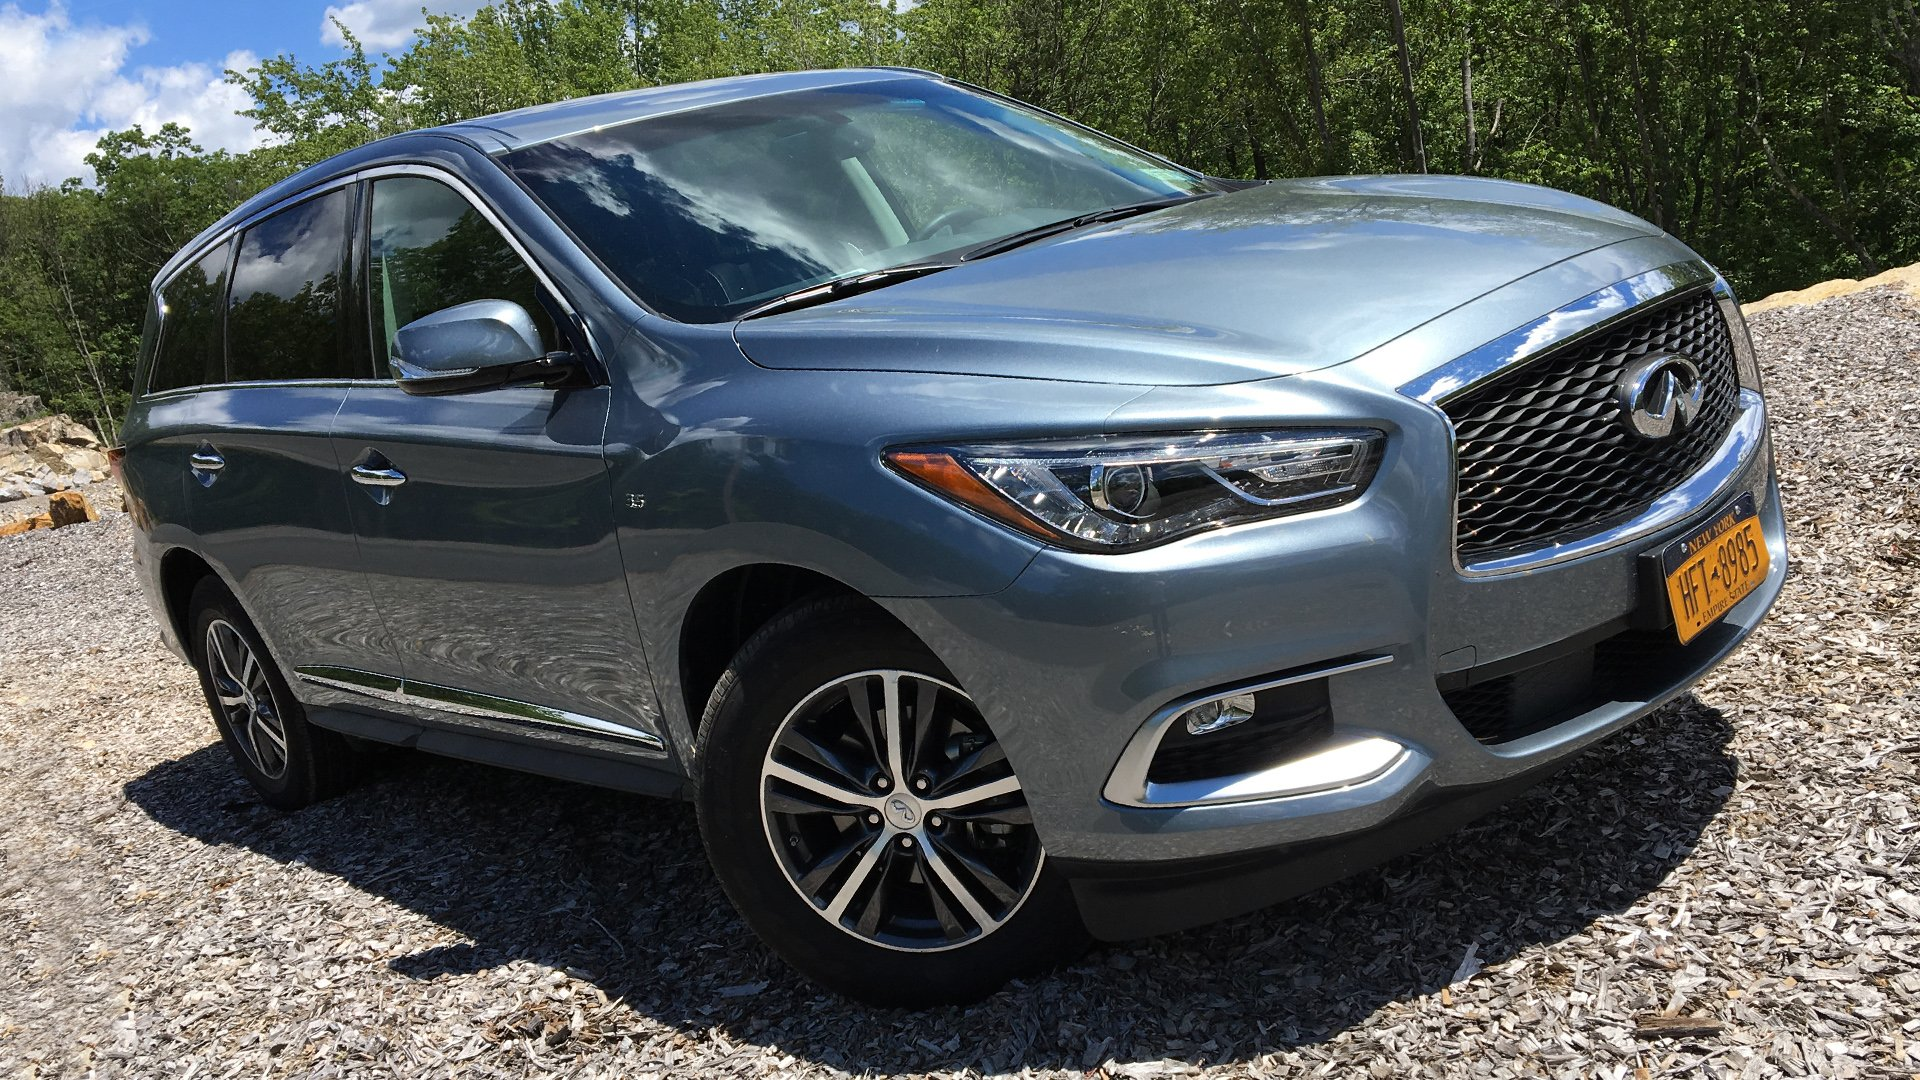 Wallpaper Andriod iPhone Infiniti QX60 New HD